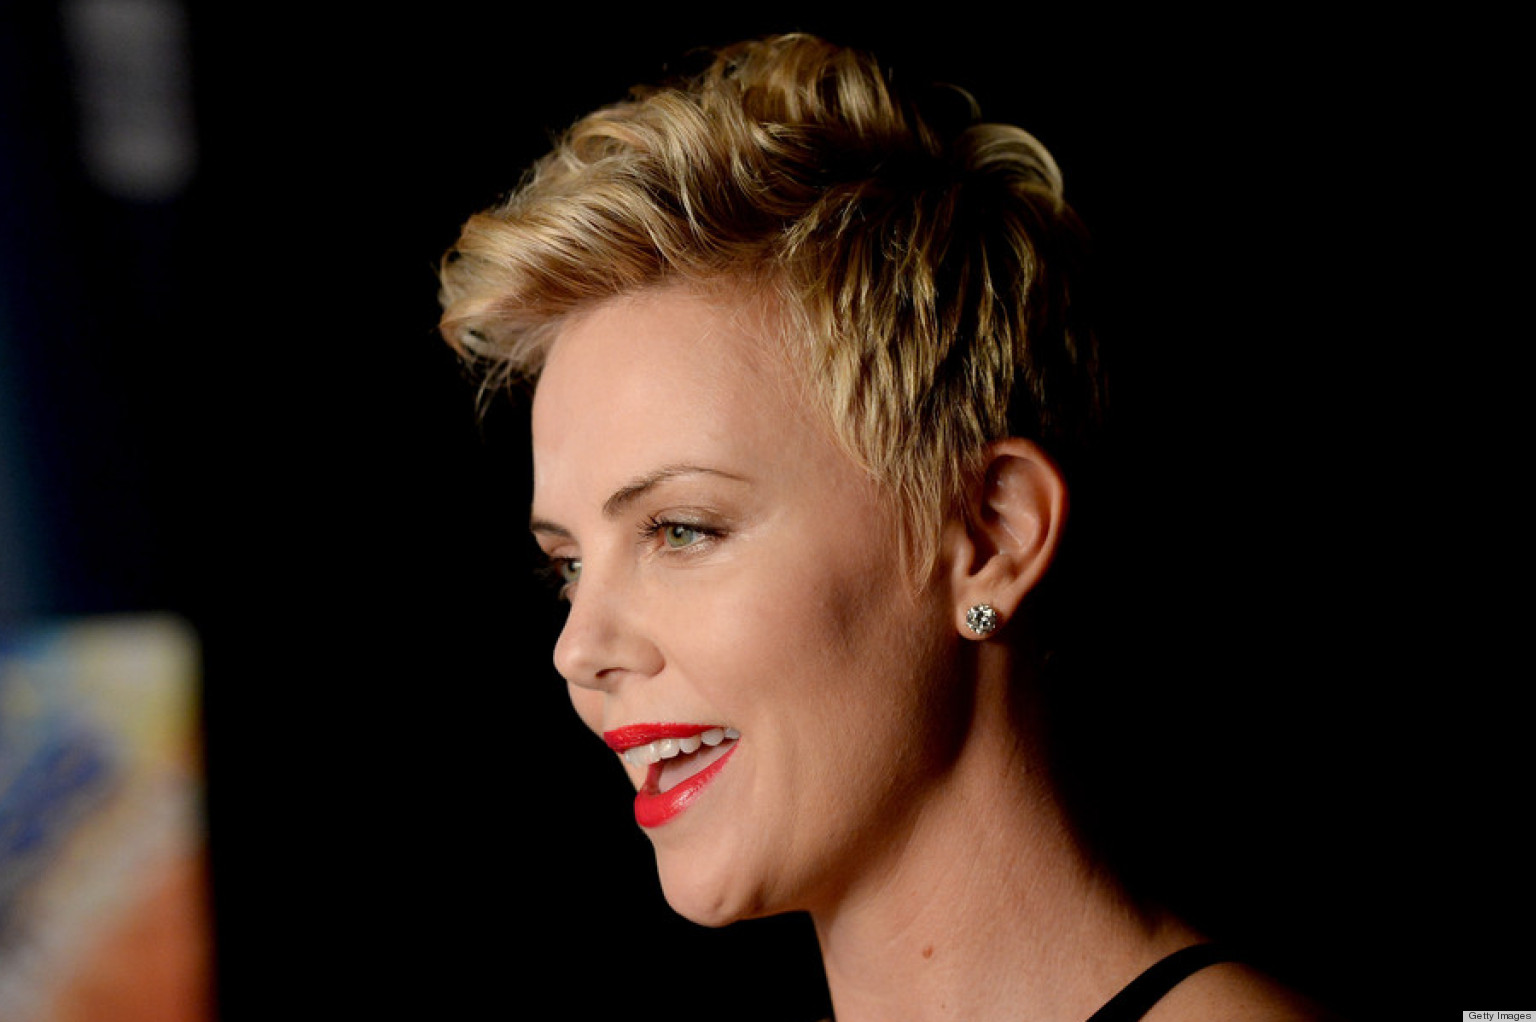 Celebrities Hairstyles: Celebrity Short Hair That Inspires Us To Chop Off Our